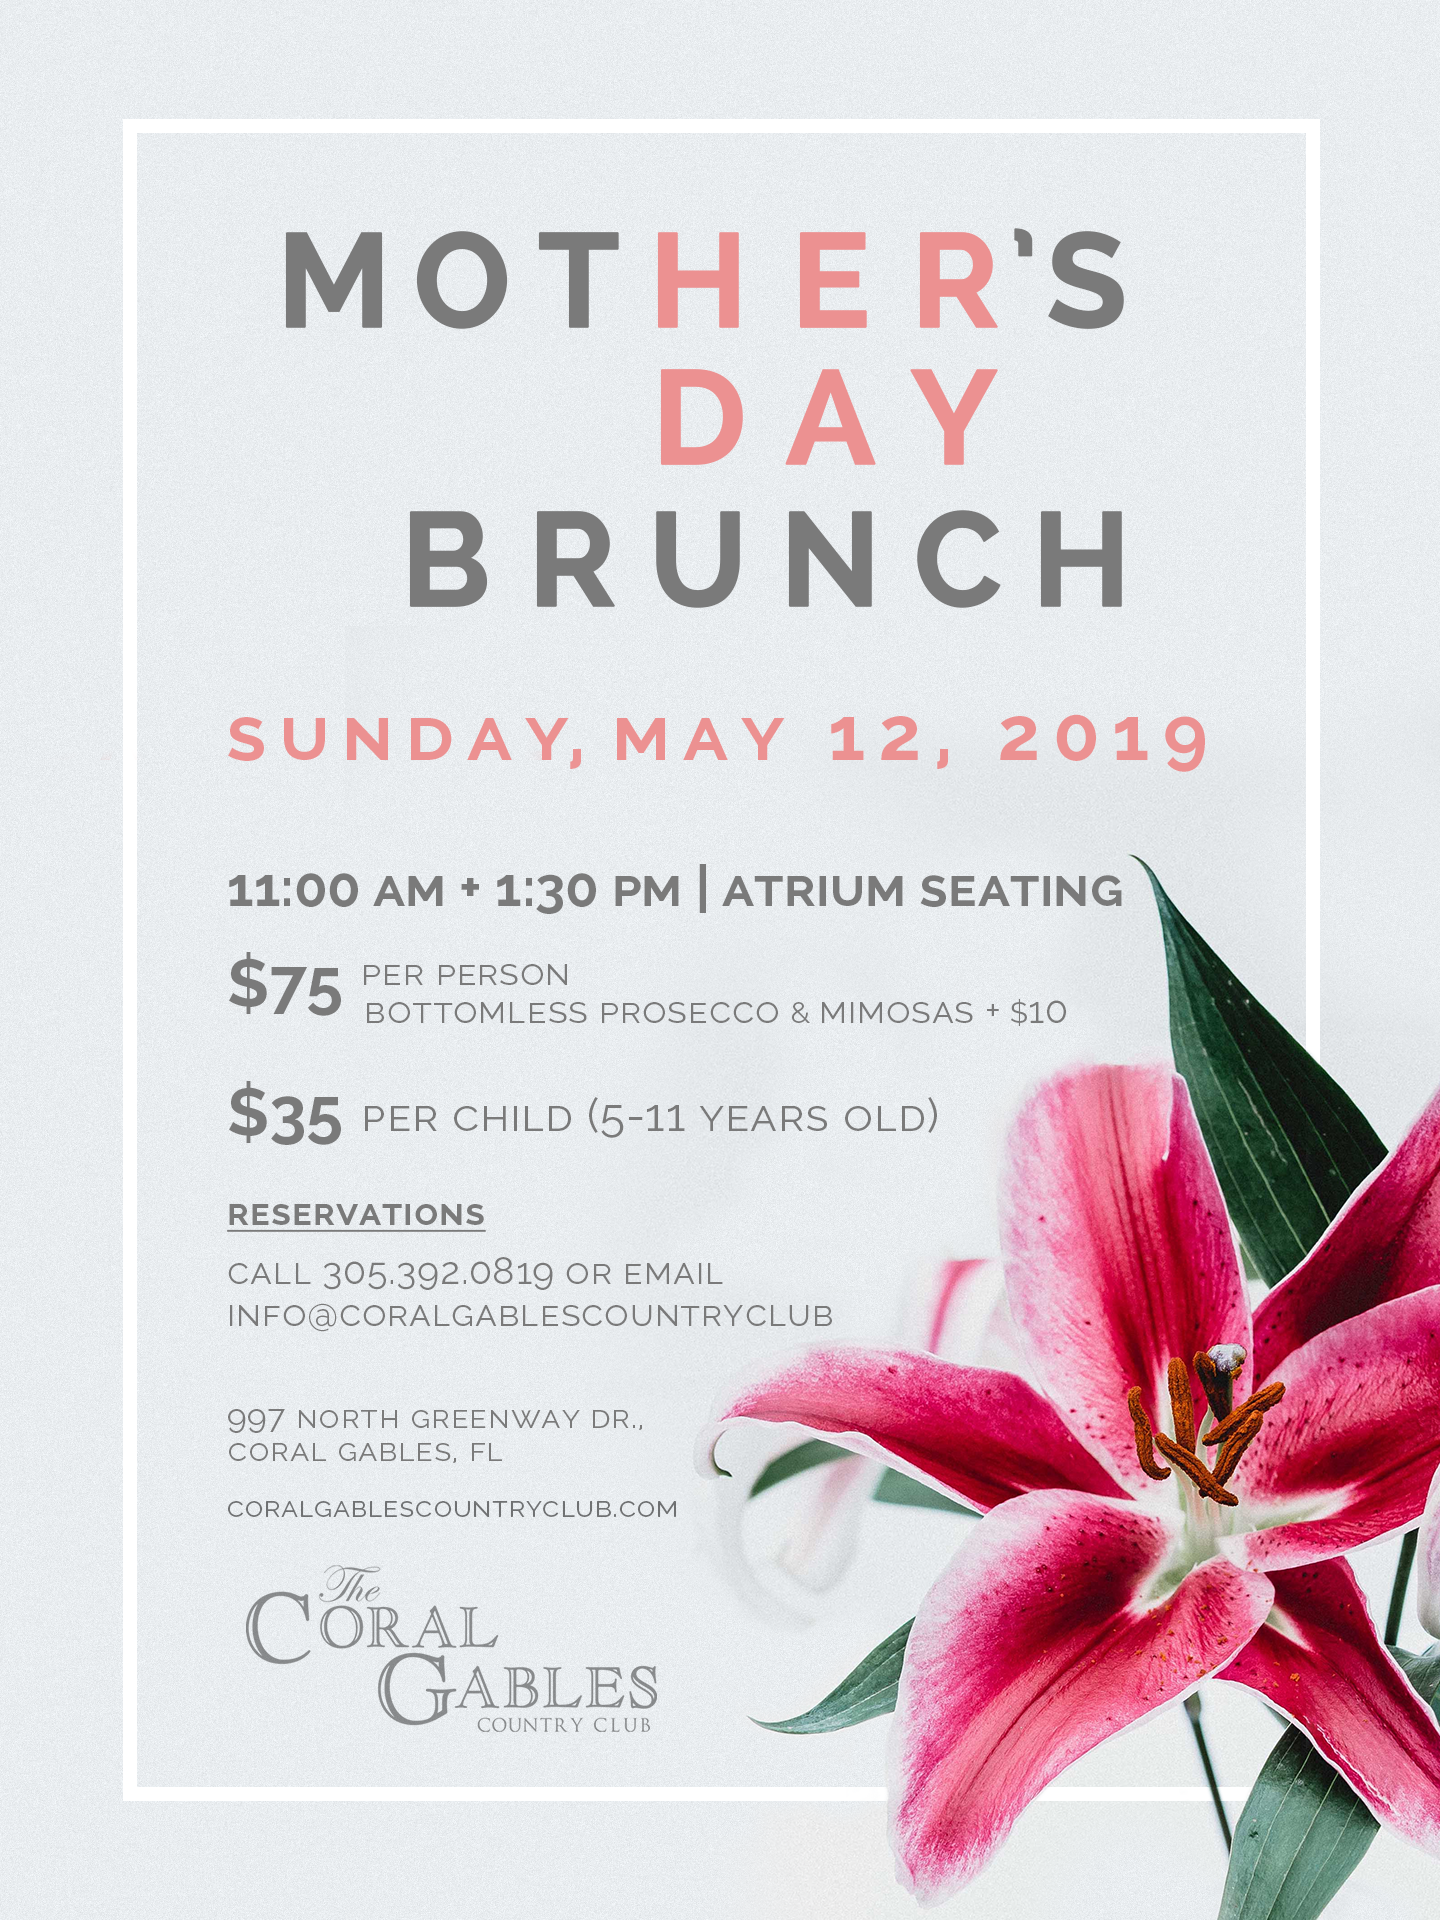 MOTHER'S DAY BRUNCH AT CORAL GABLES COUNTRY CLUB